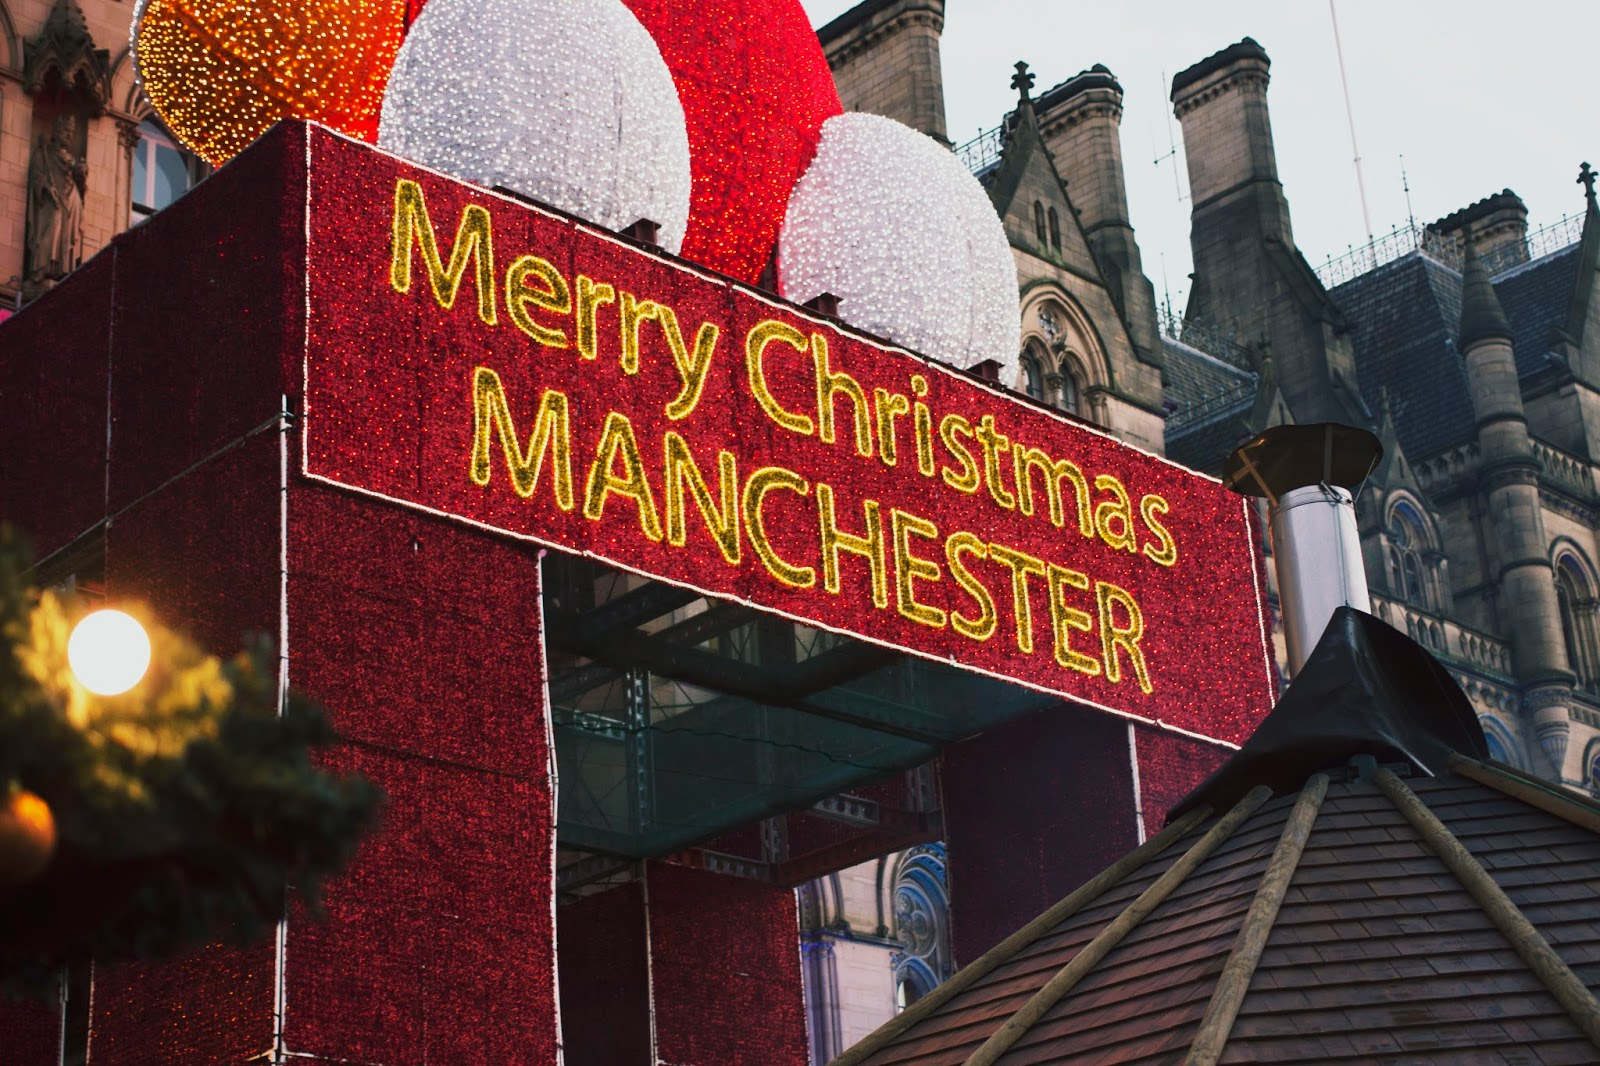 Manchester Christmas Markets 2016, Manchester Christmas Market, Zippy, Santa, Katie Writes, Lights,